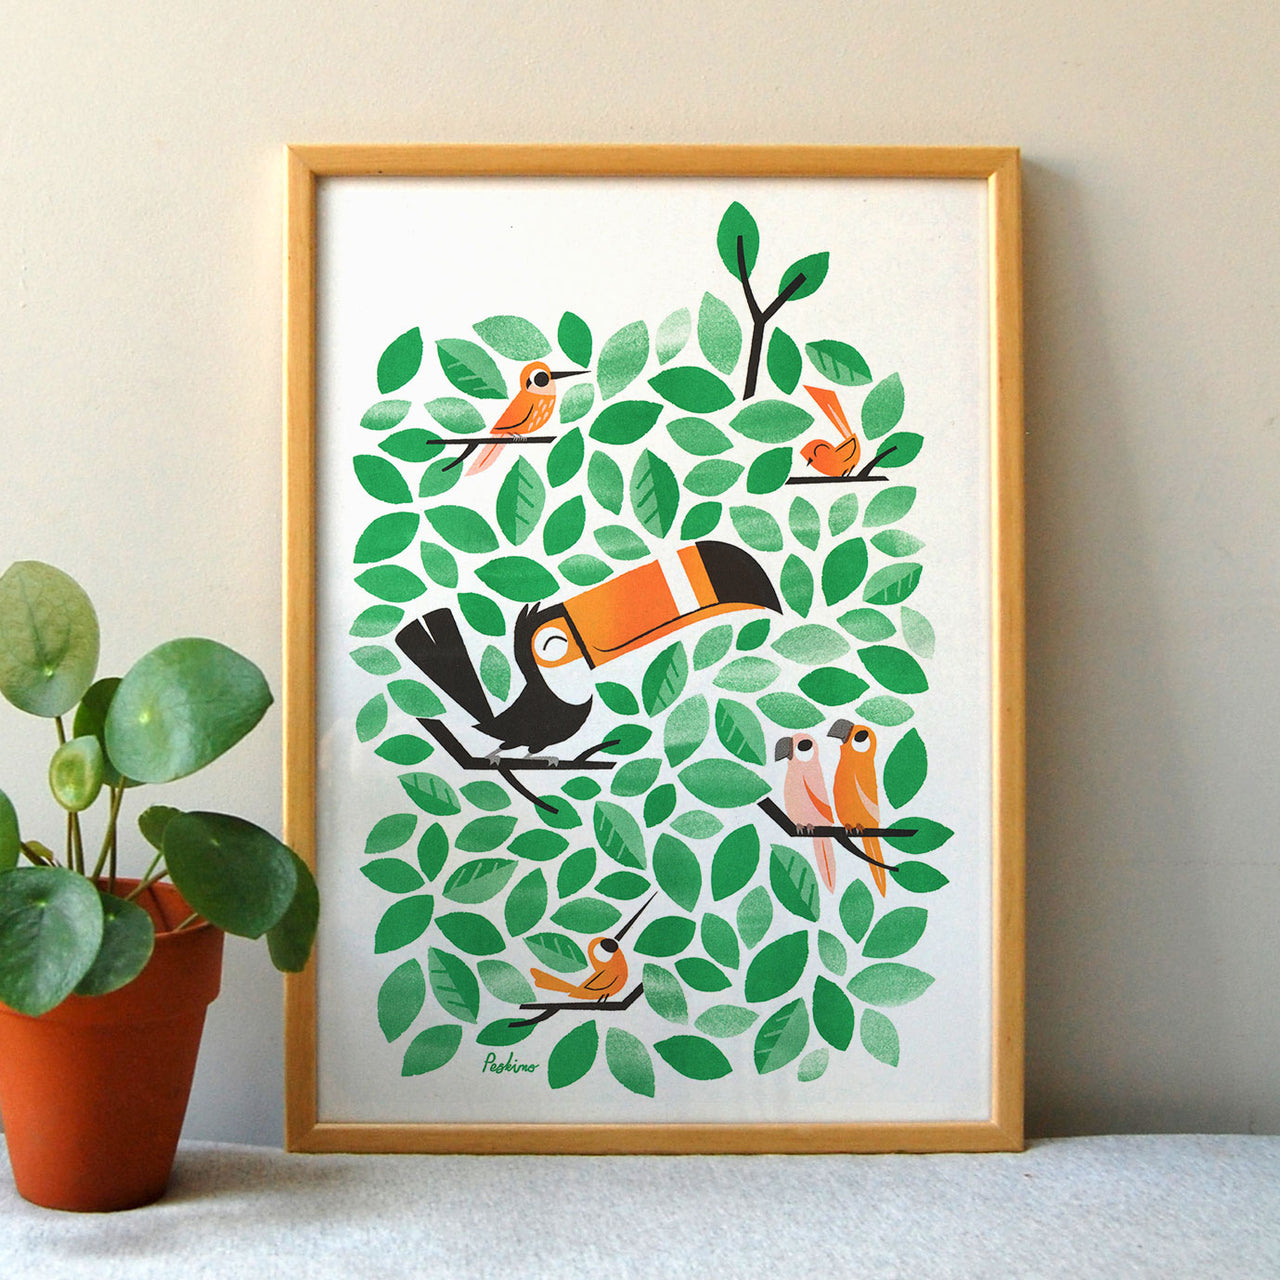 Toucan Tweets riso print by Peskimo